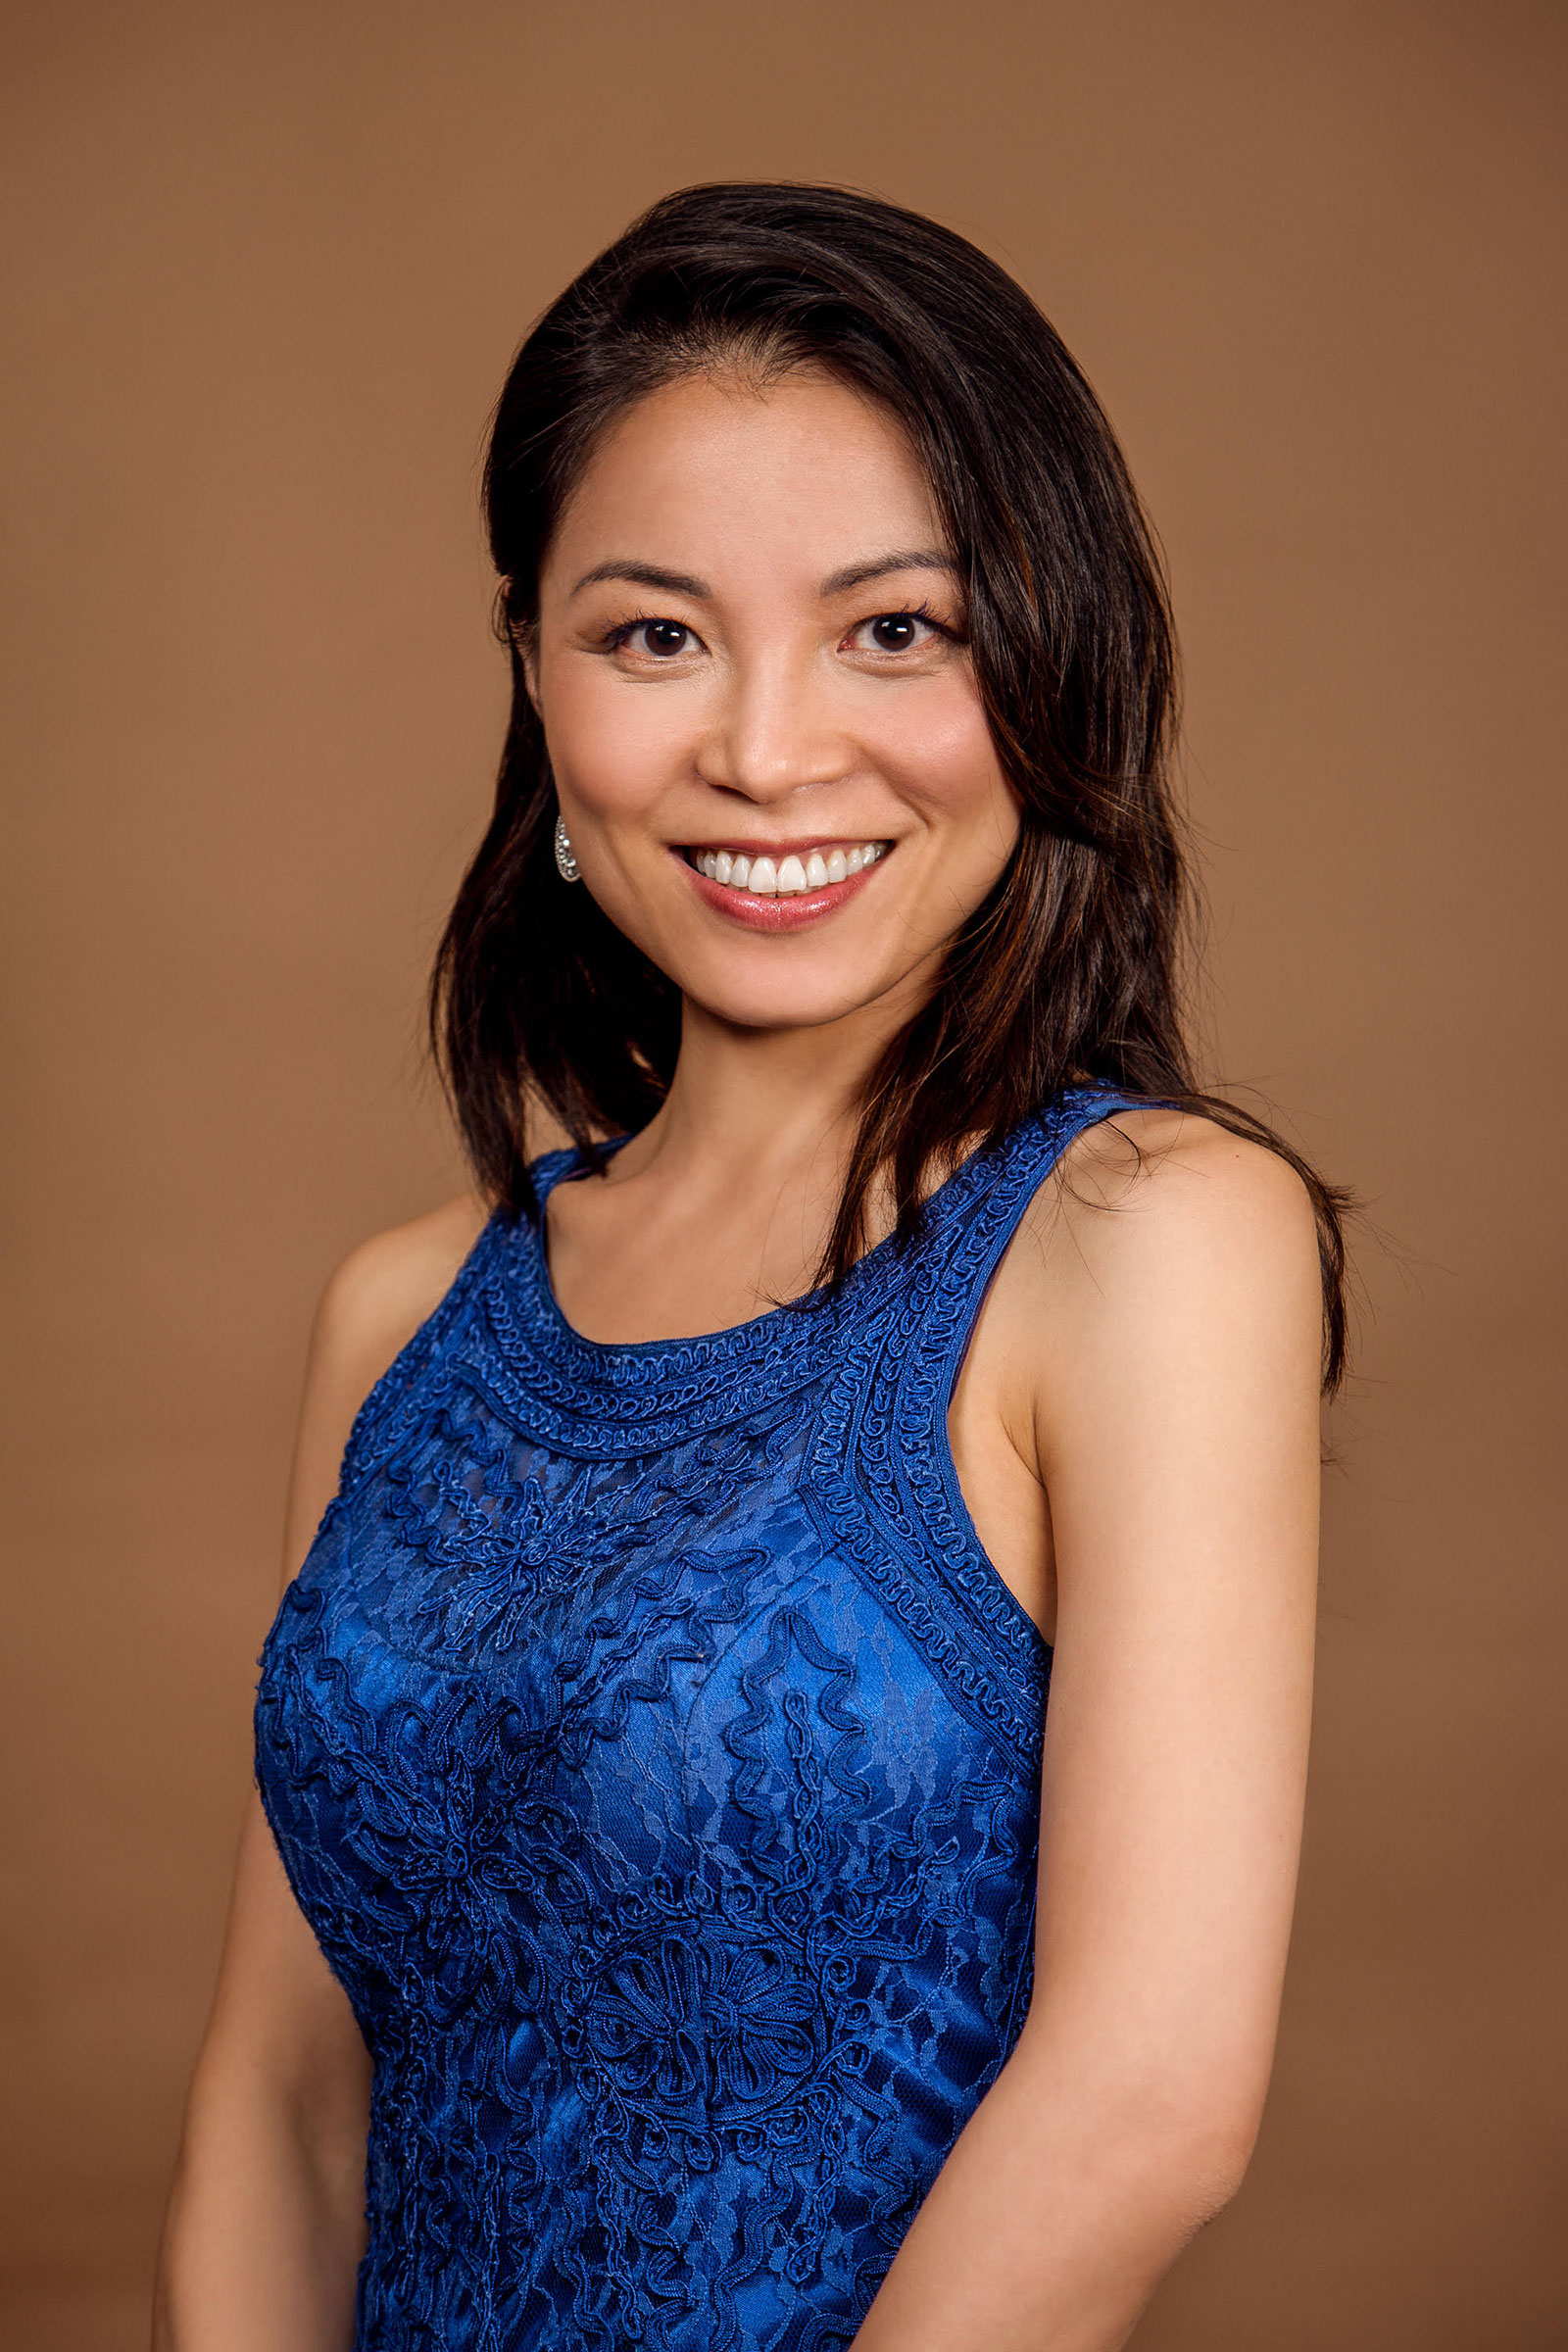 Dr. Rita Chuang - Dr. Rita Y. Chuang is passionate about improving smiles and empowering lives. She enjoys delivering personalized care to create stunning smiles. She is a Board-Certified Orthodontist and served as the Clinical Director at UPenn.